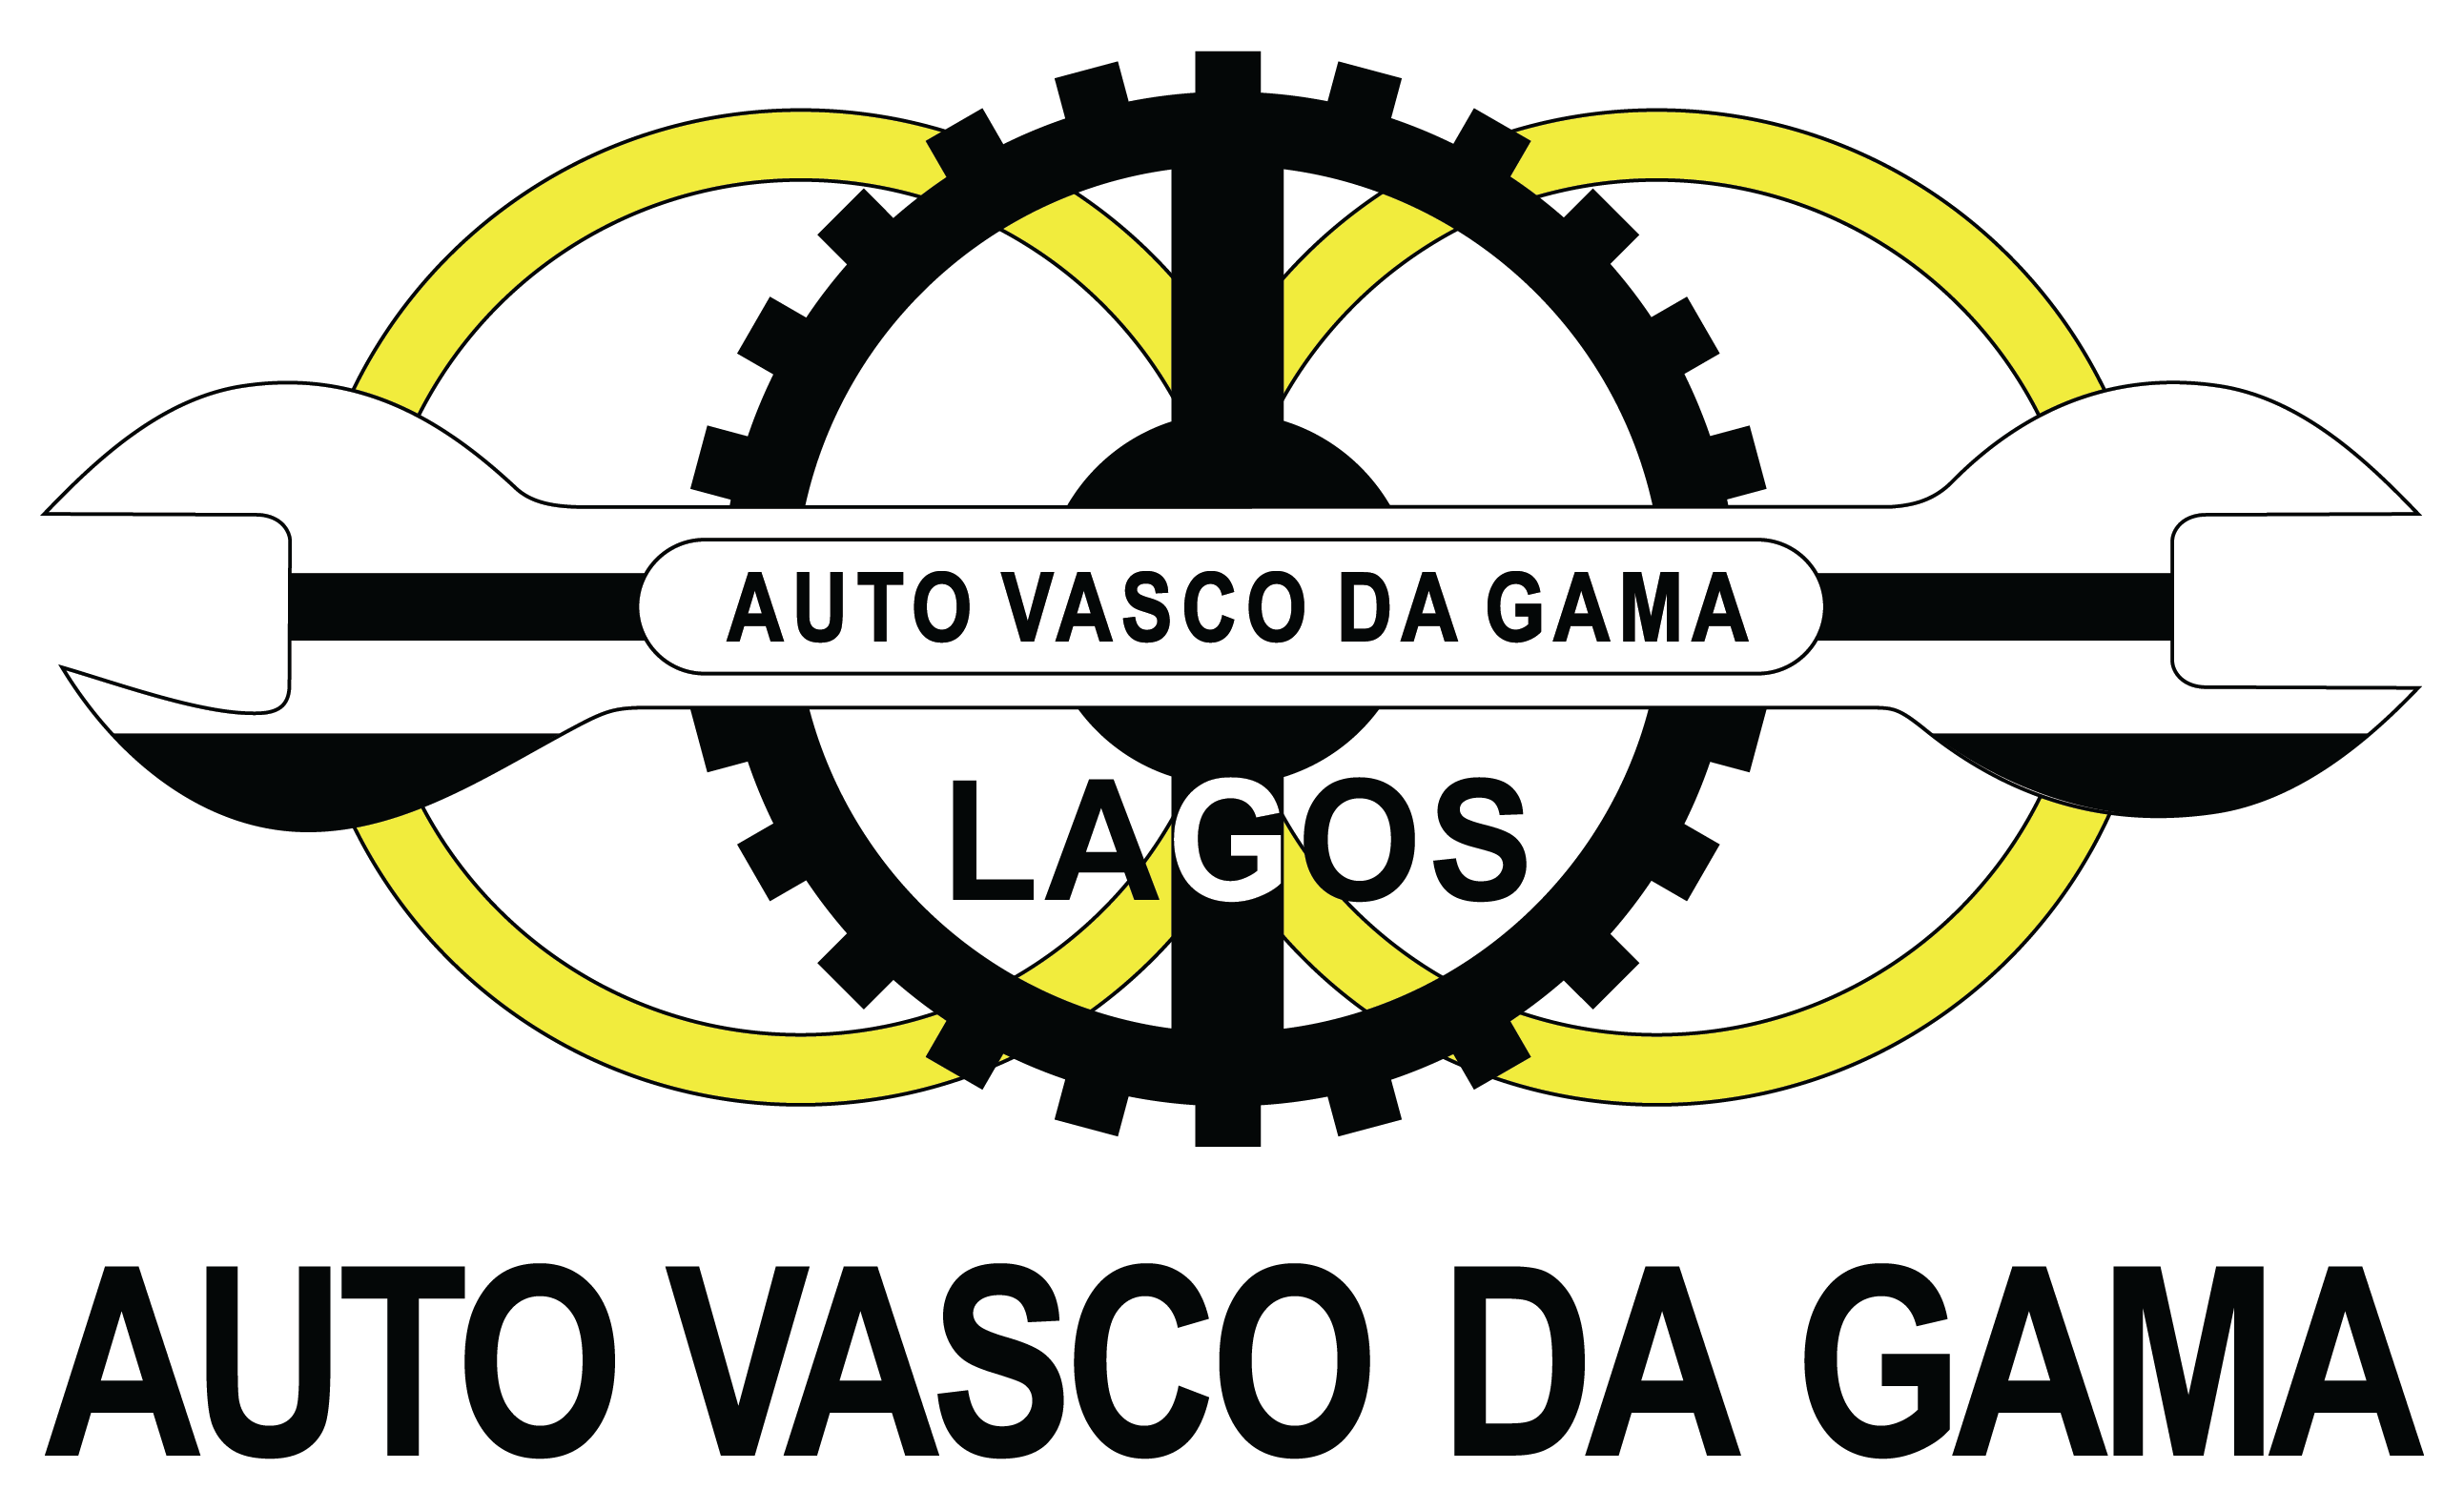 Vasco da Gama car